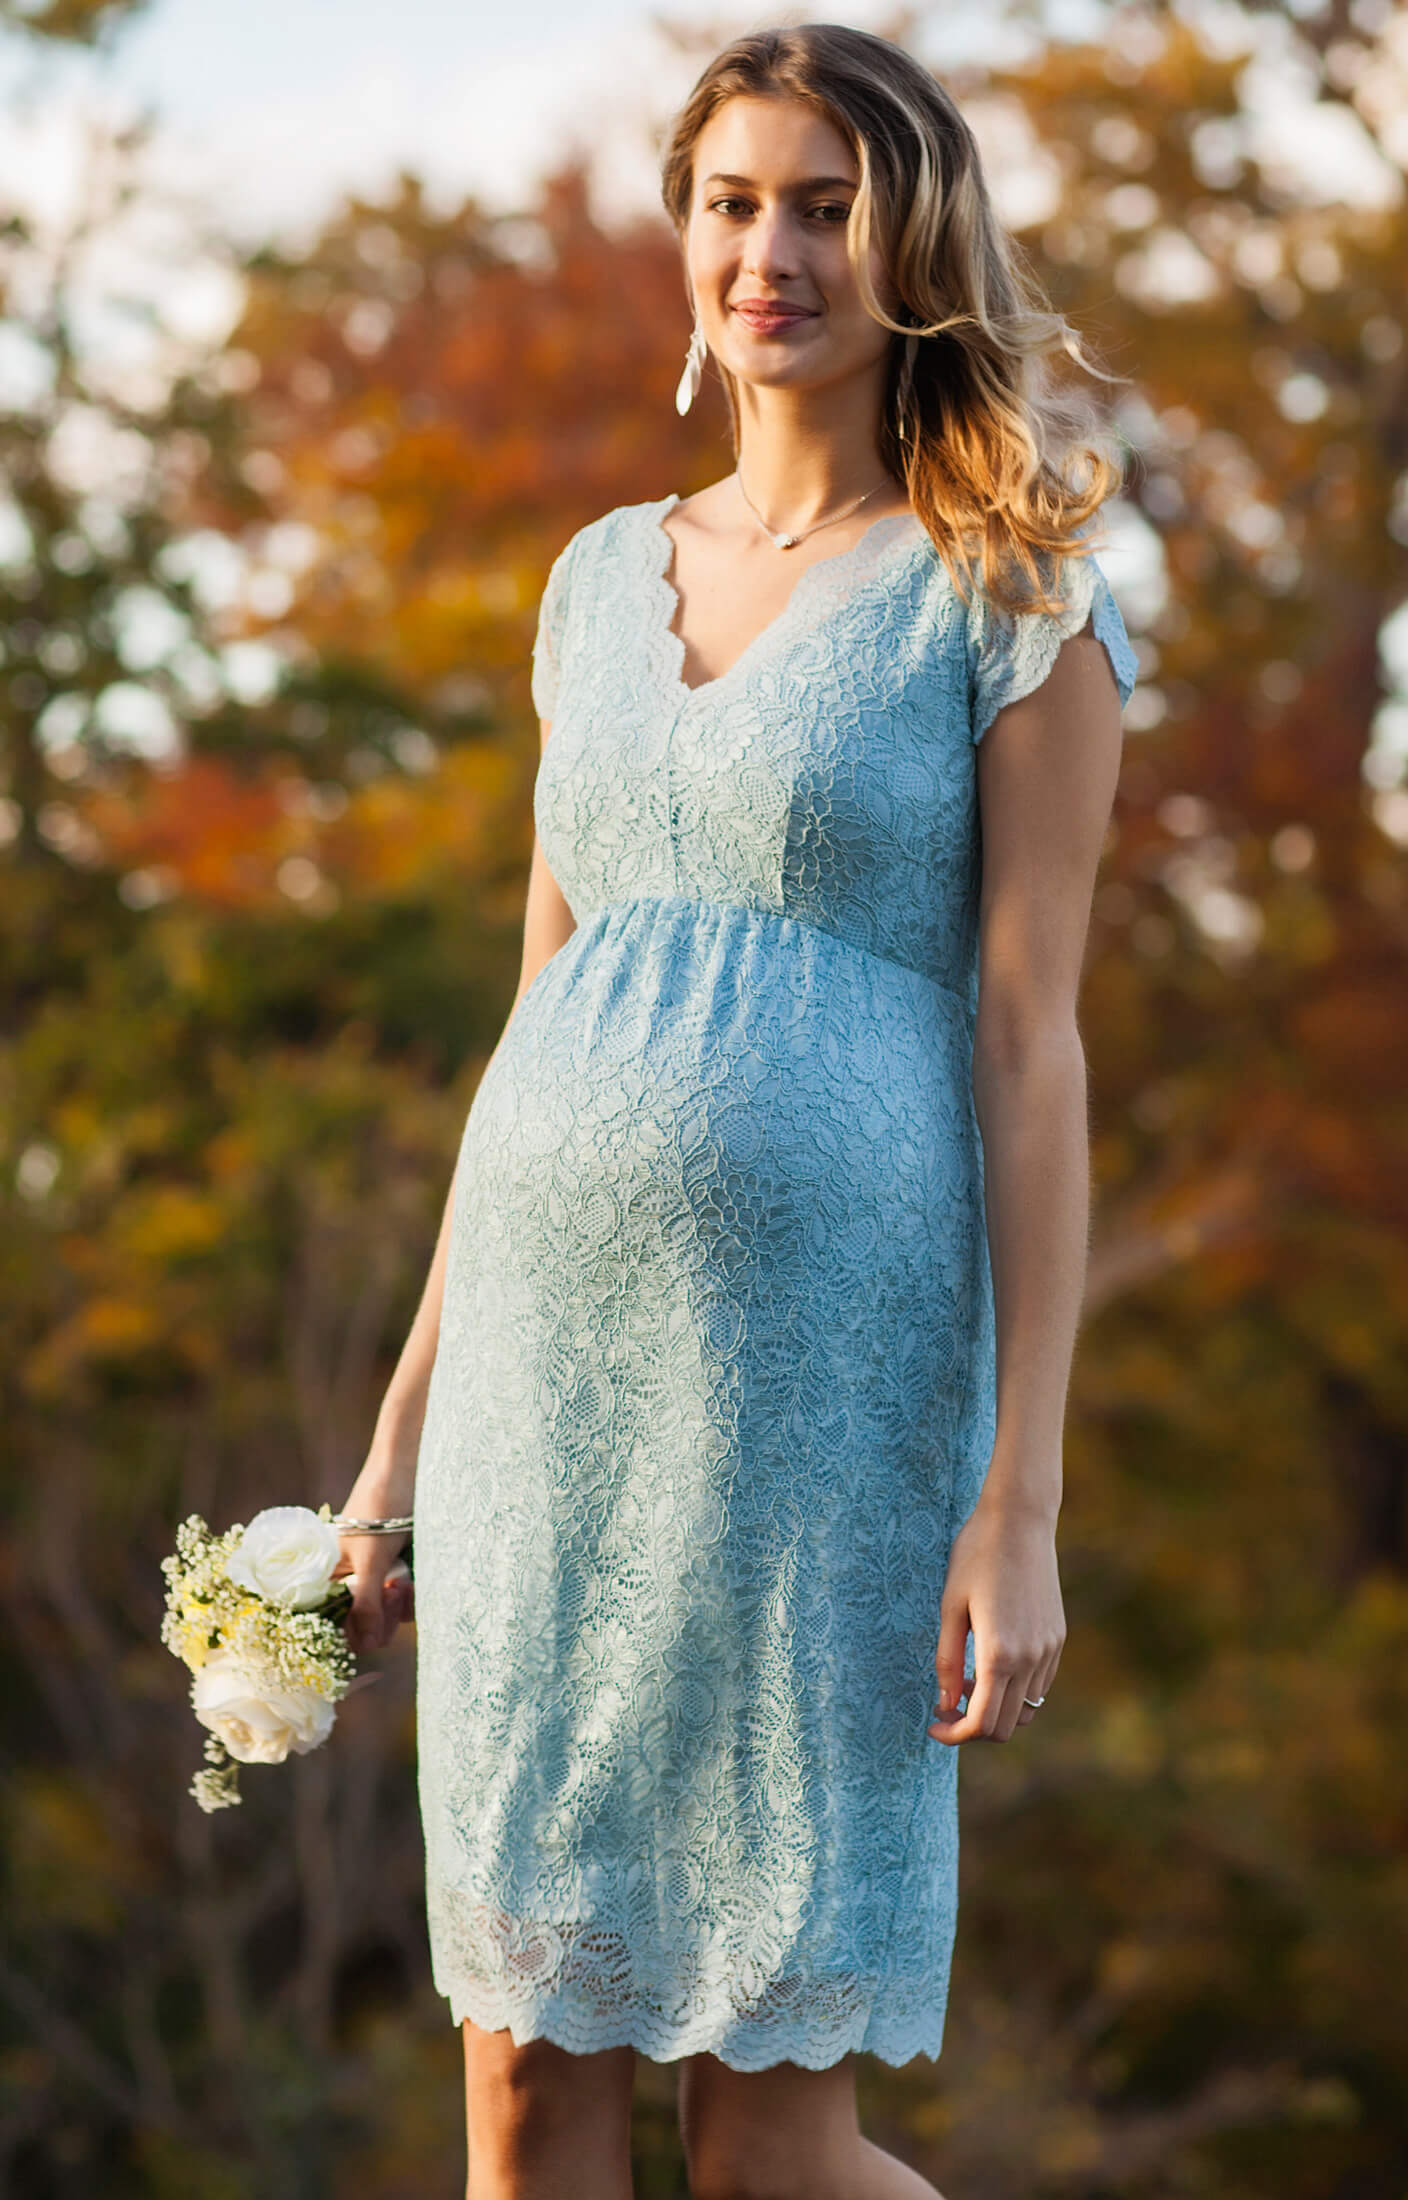 f02704006cf26 Laura Maternity Lace Dress Eau de Nil - Maternity Wedding Dresses, Evening  Wear and Party Clothes by Tiffany Rose US